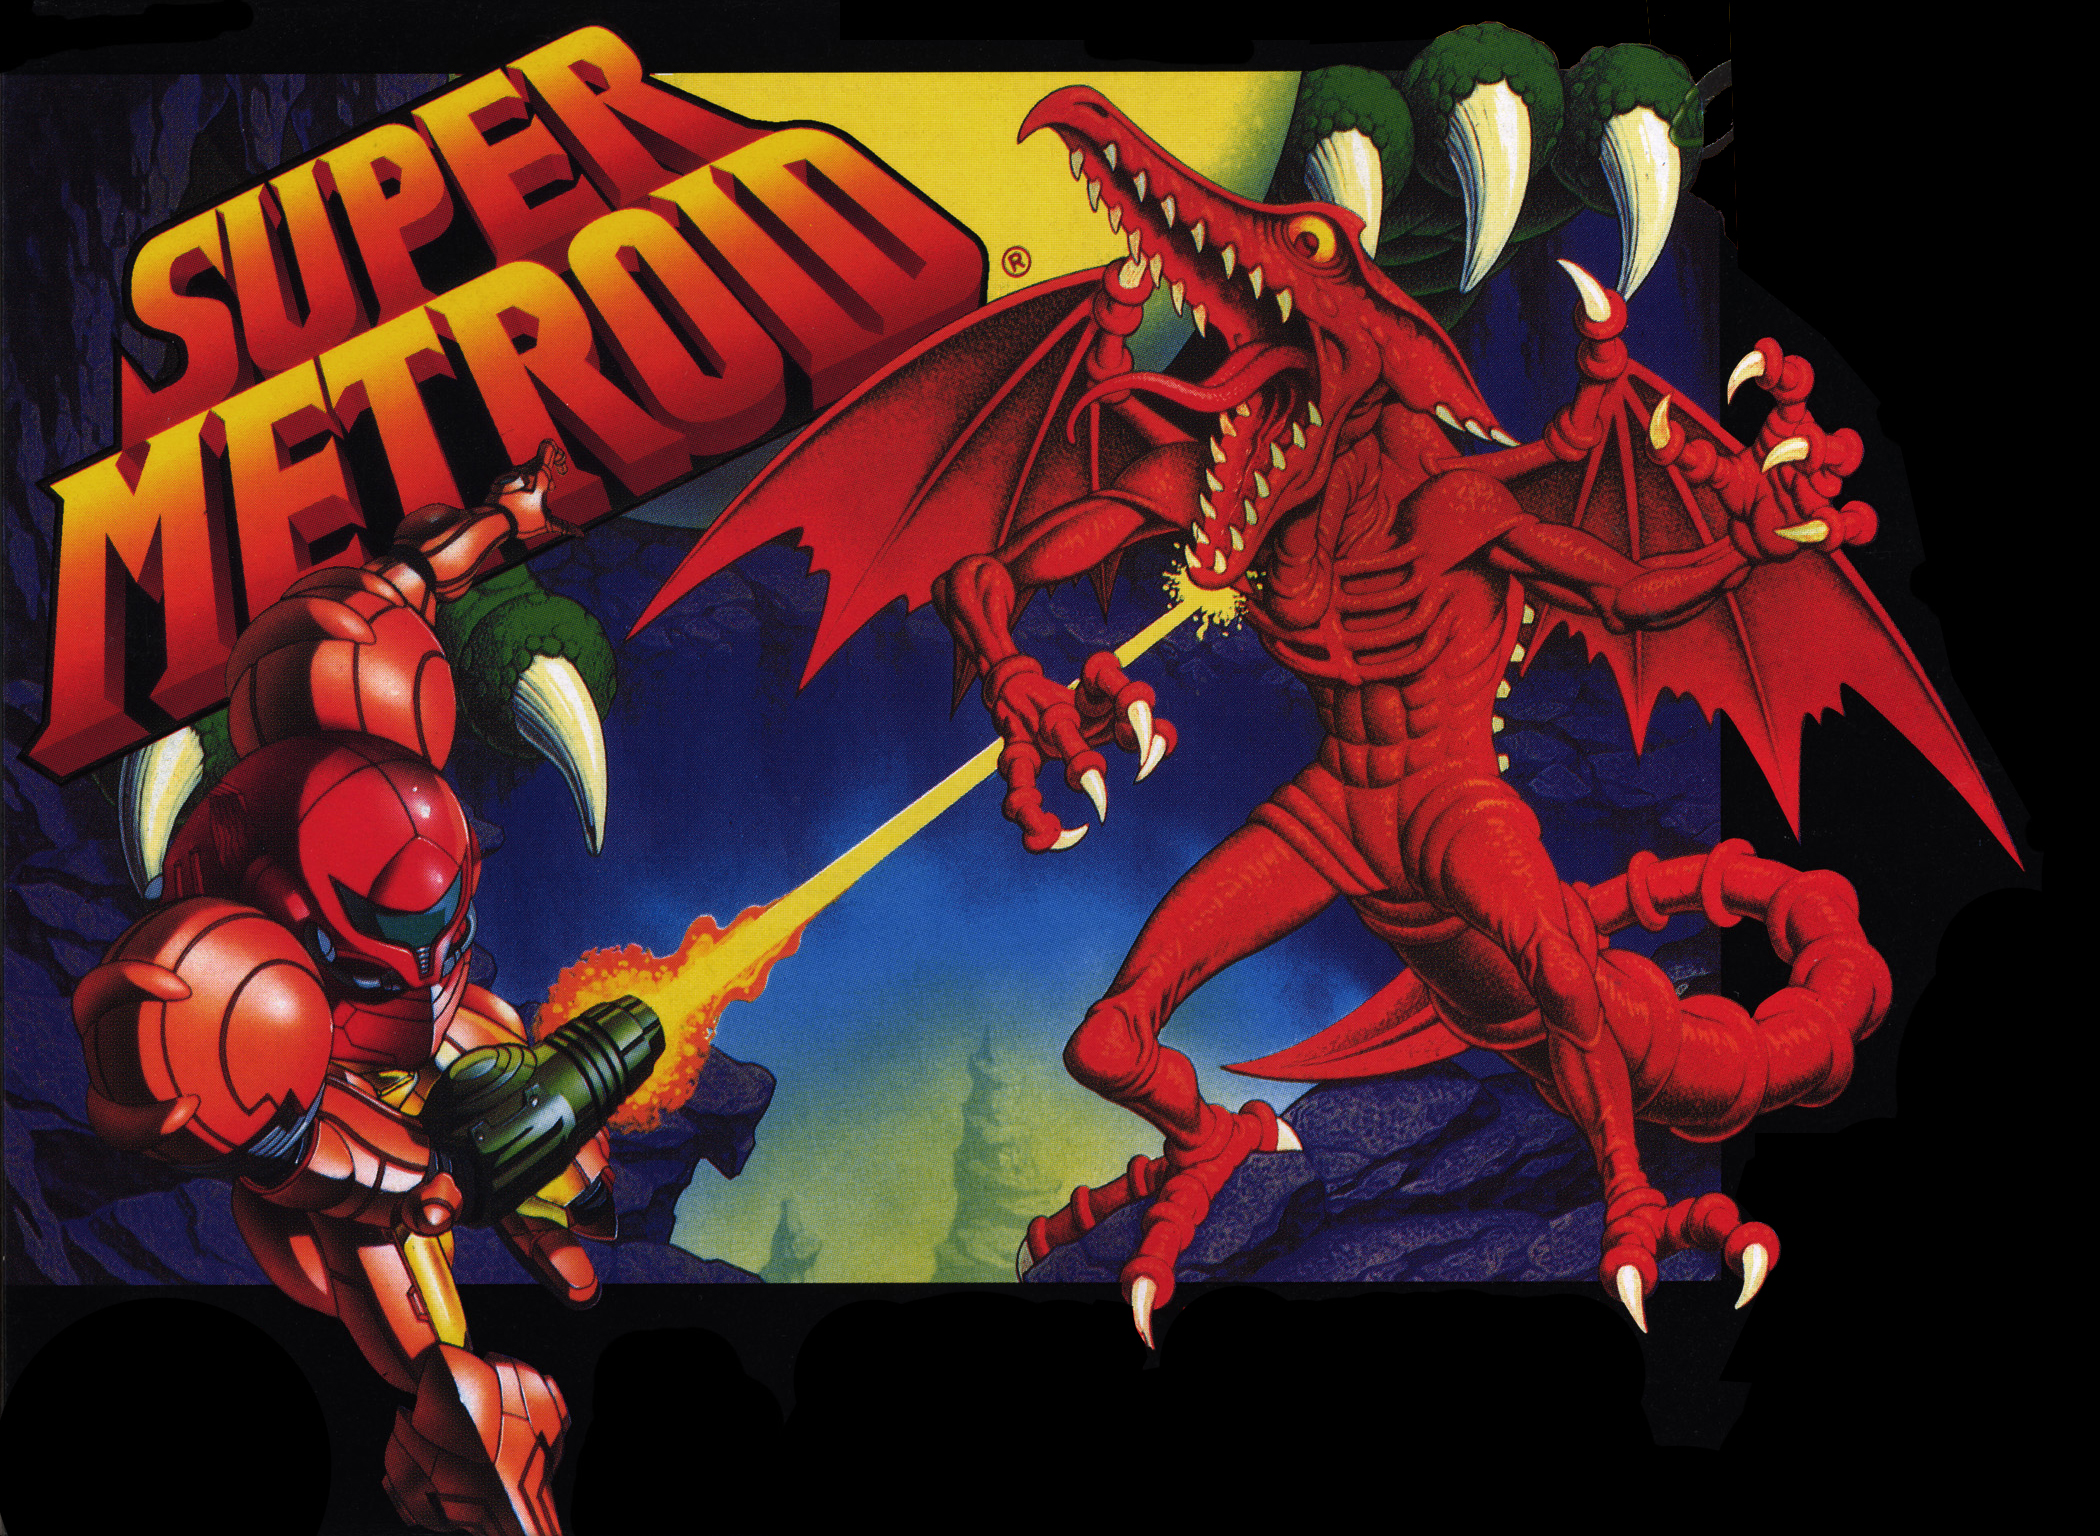 Super Metroid – does Nintendo still hate Europe?